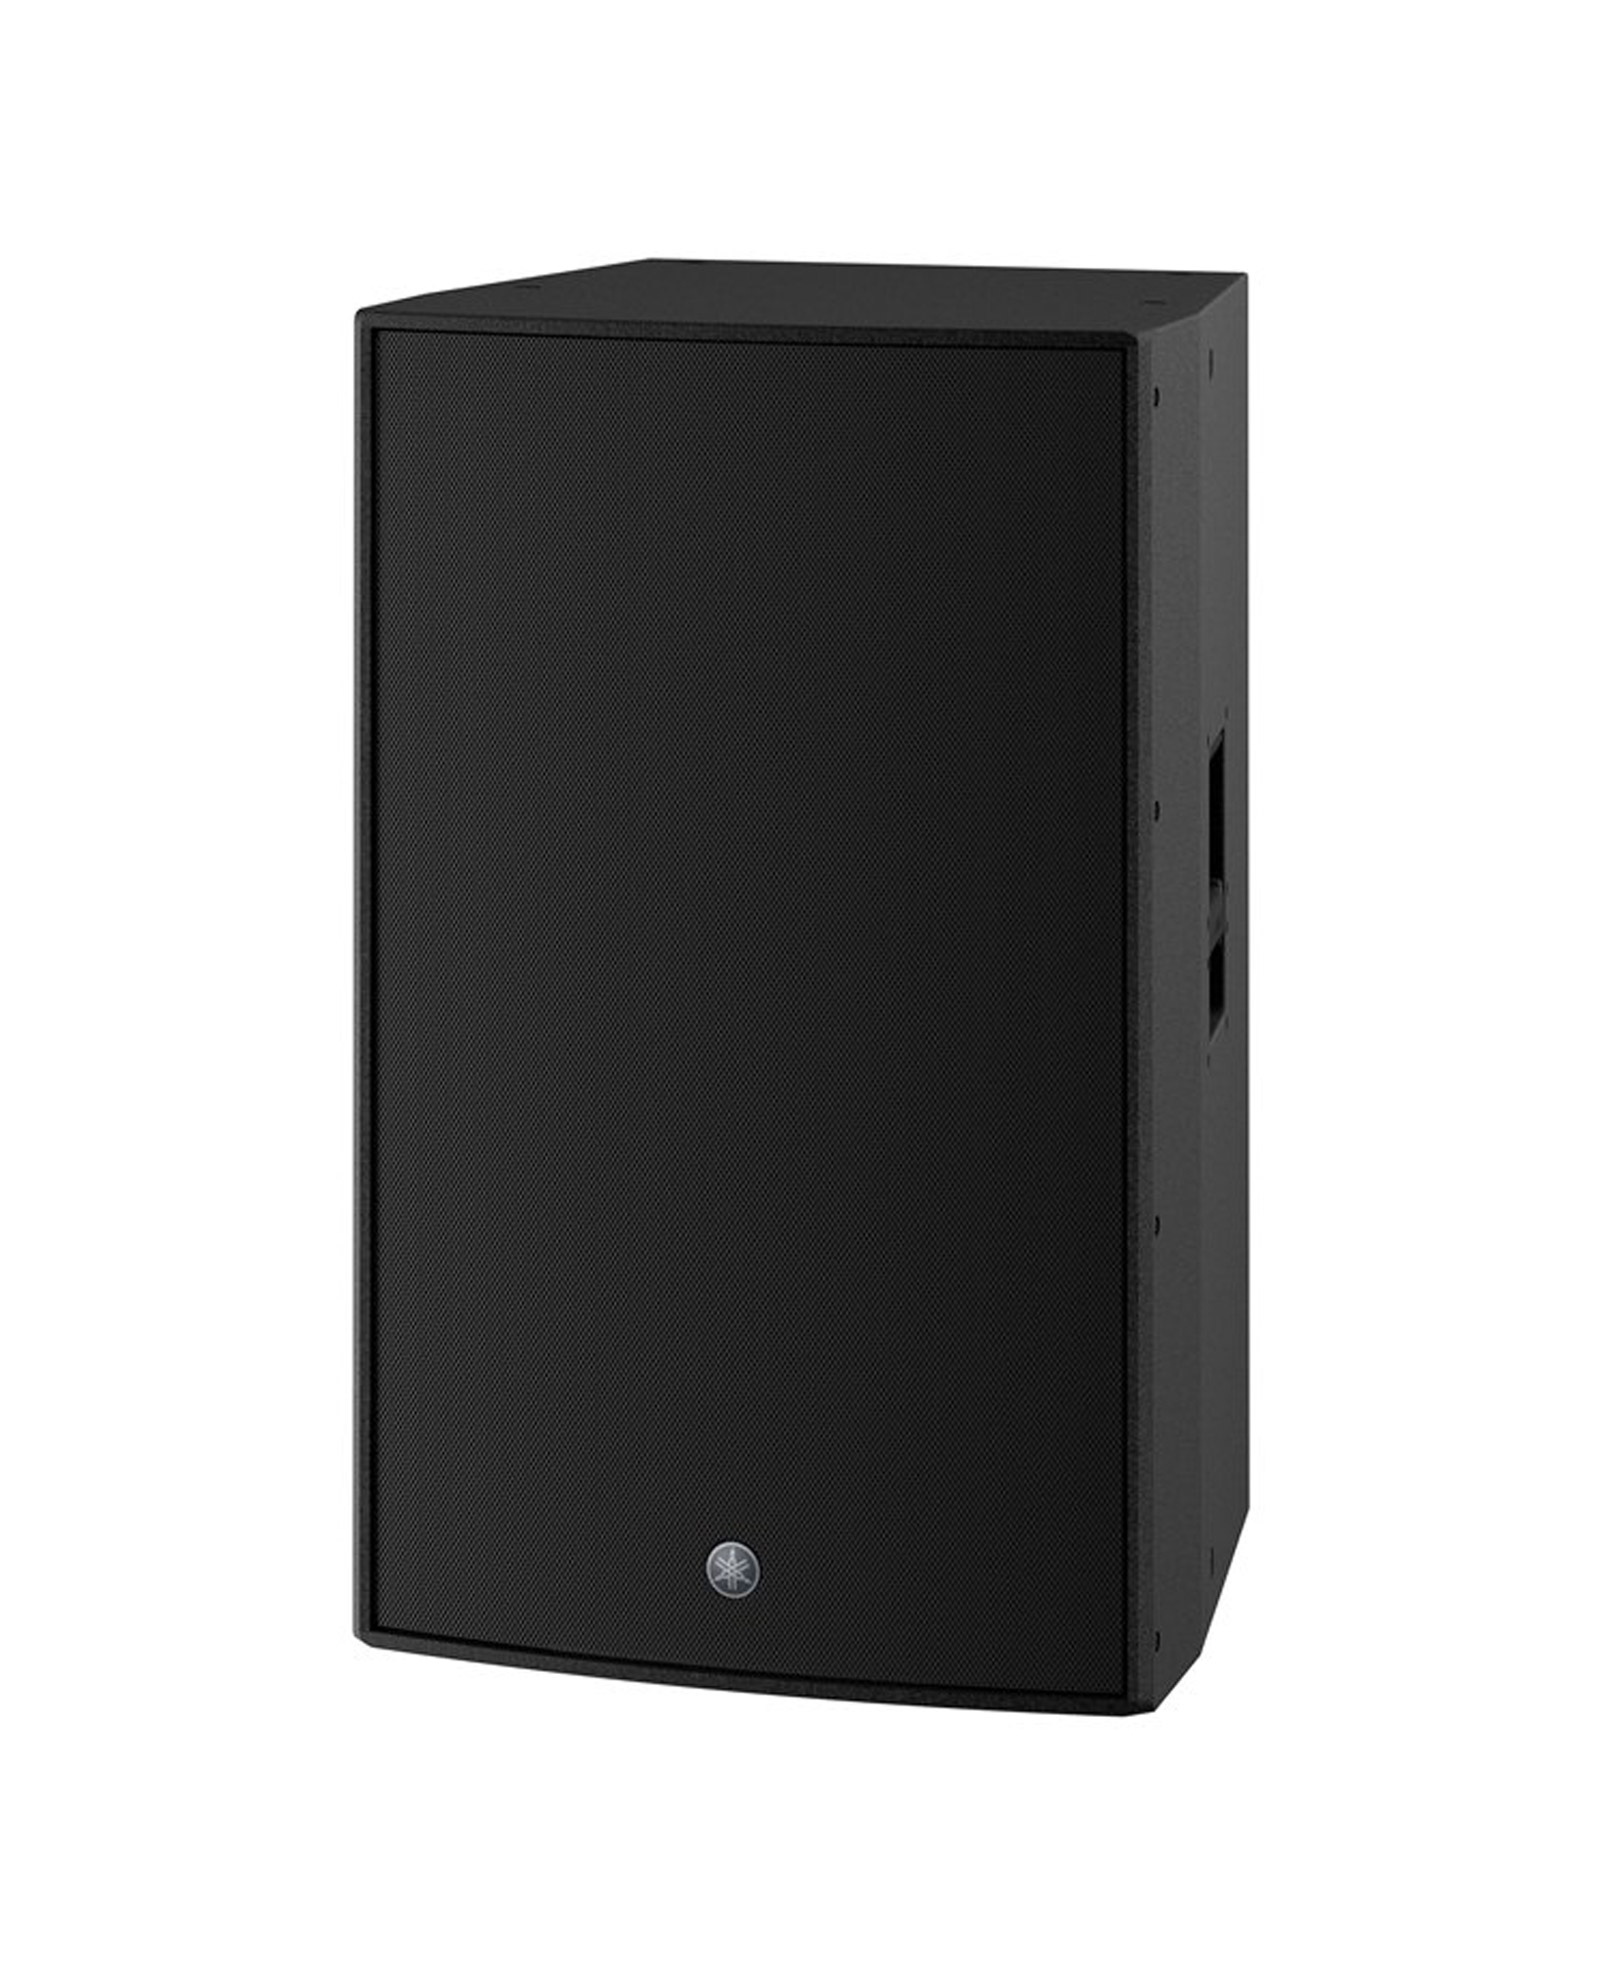 Yamaha Dzr315 3 Way Powered Loudspeaker Dzr315